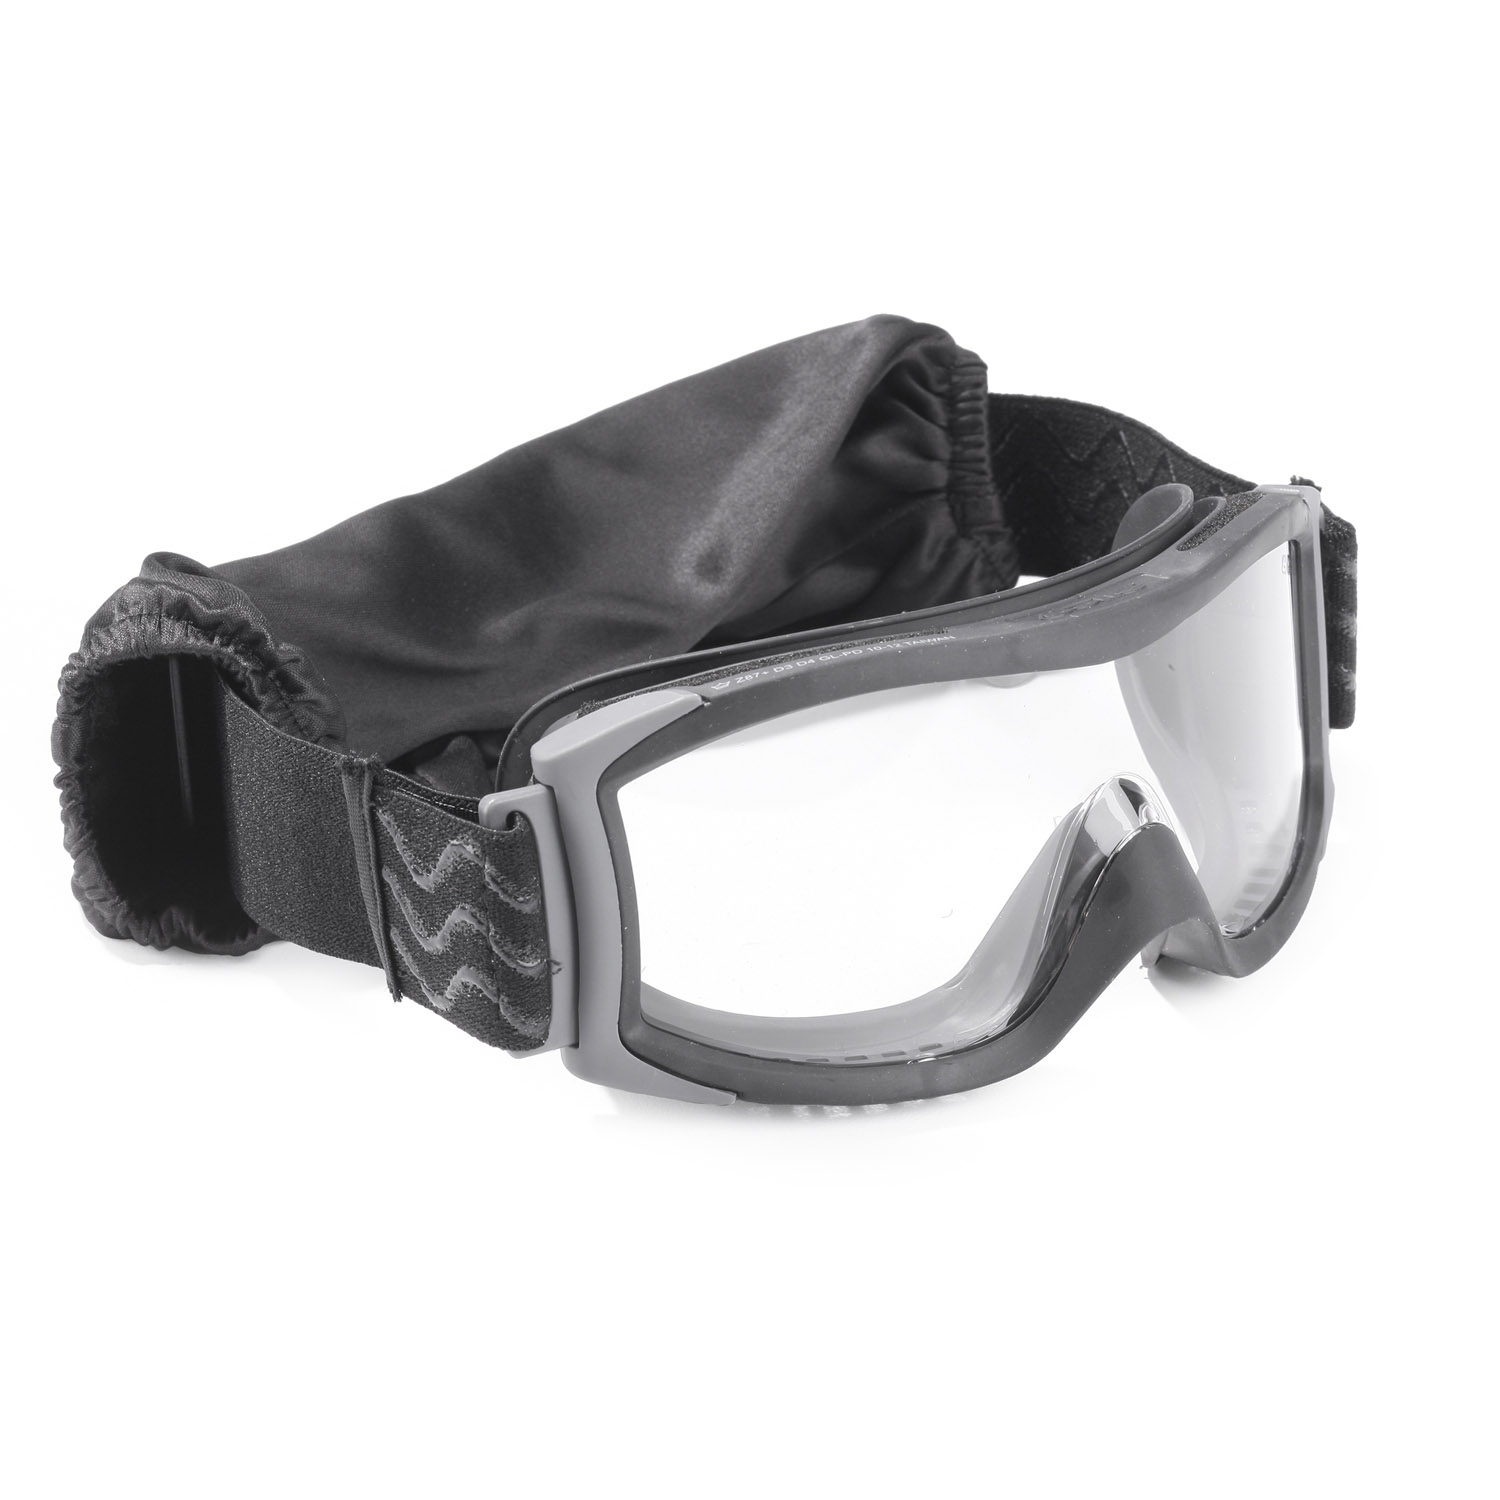 Bolle X1000 Goggles with ClearLenses